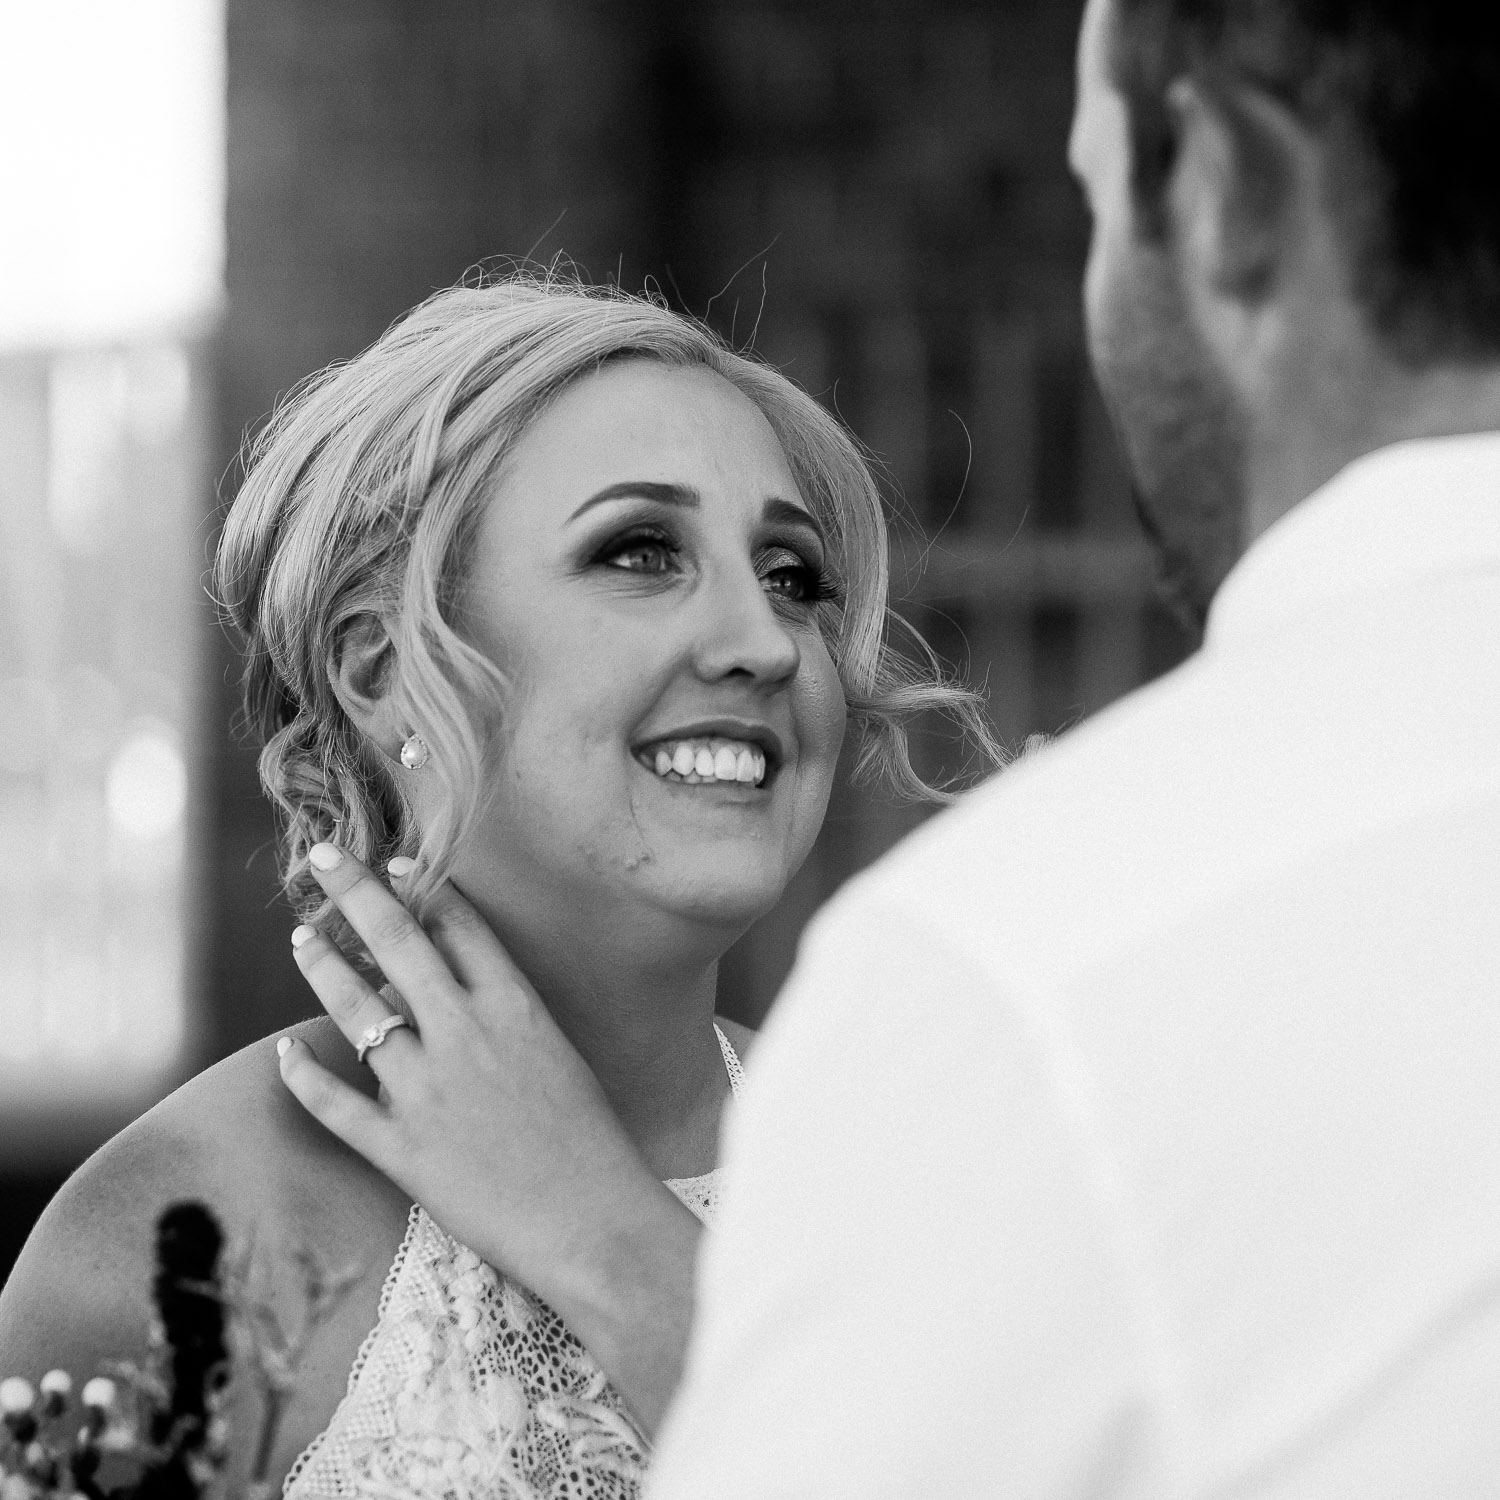 Wedding photographer temora nsw